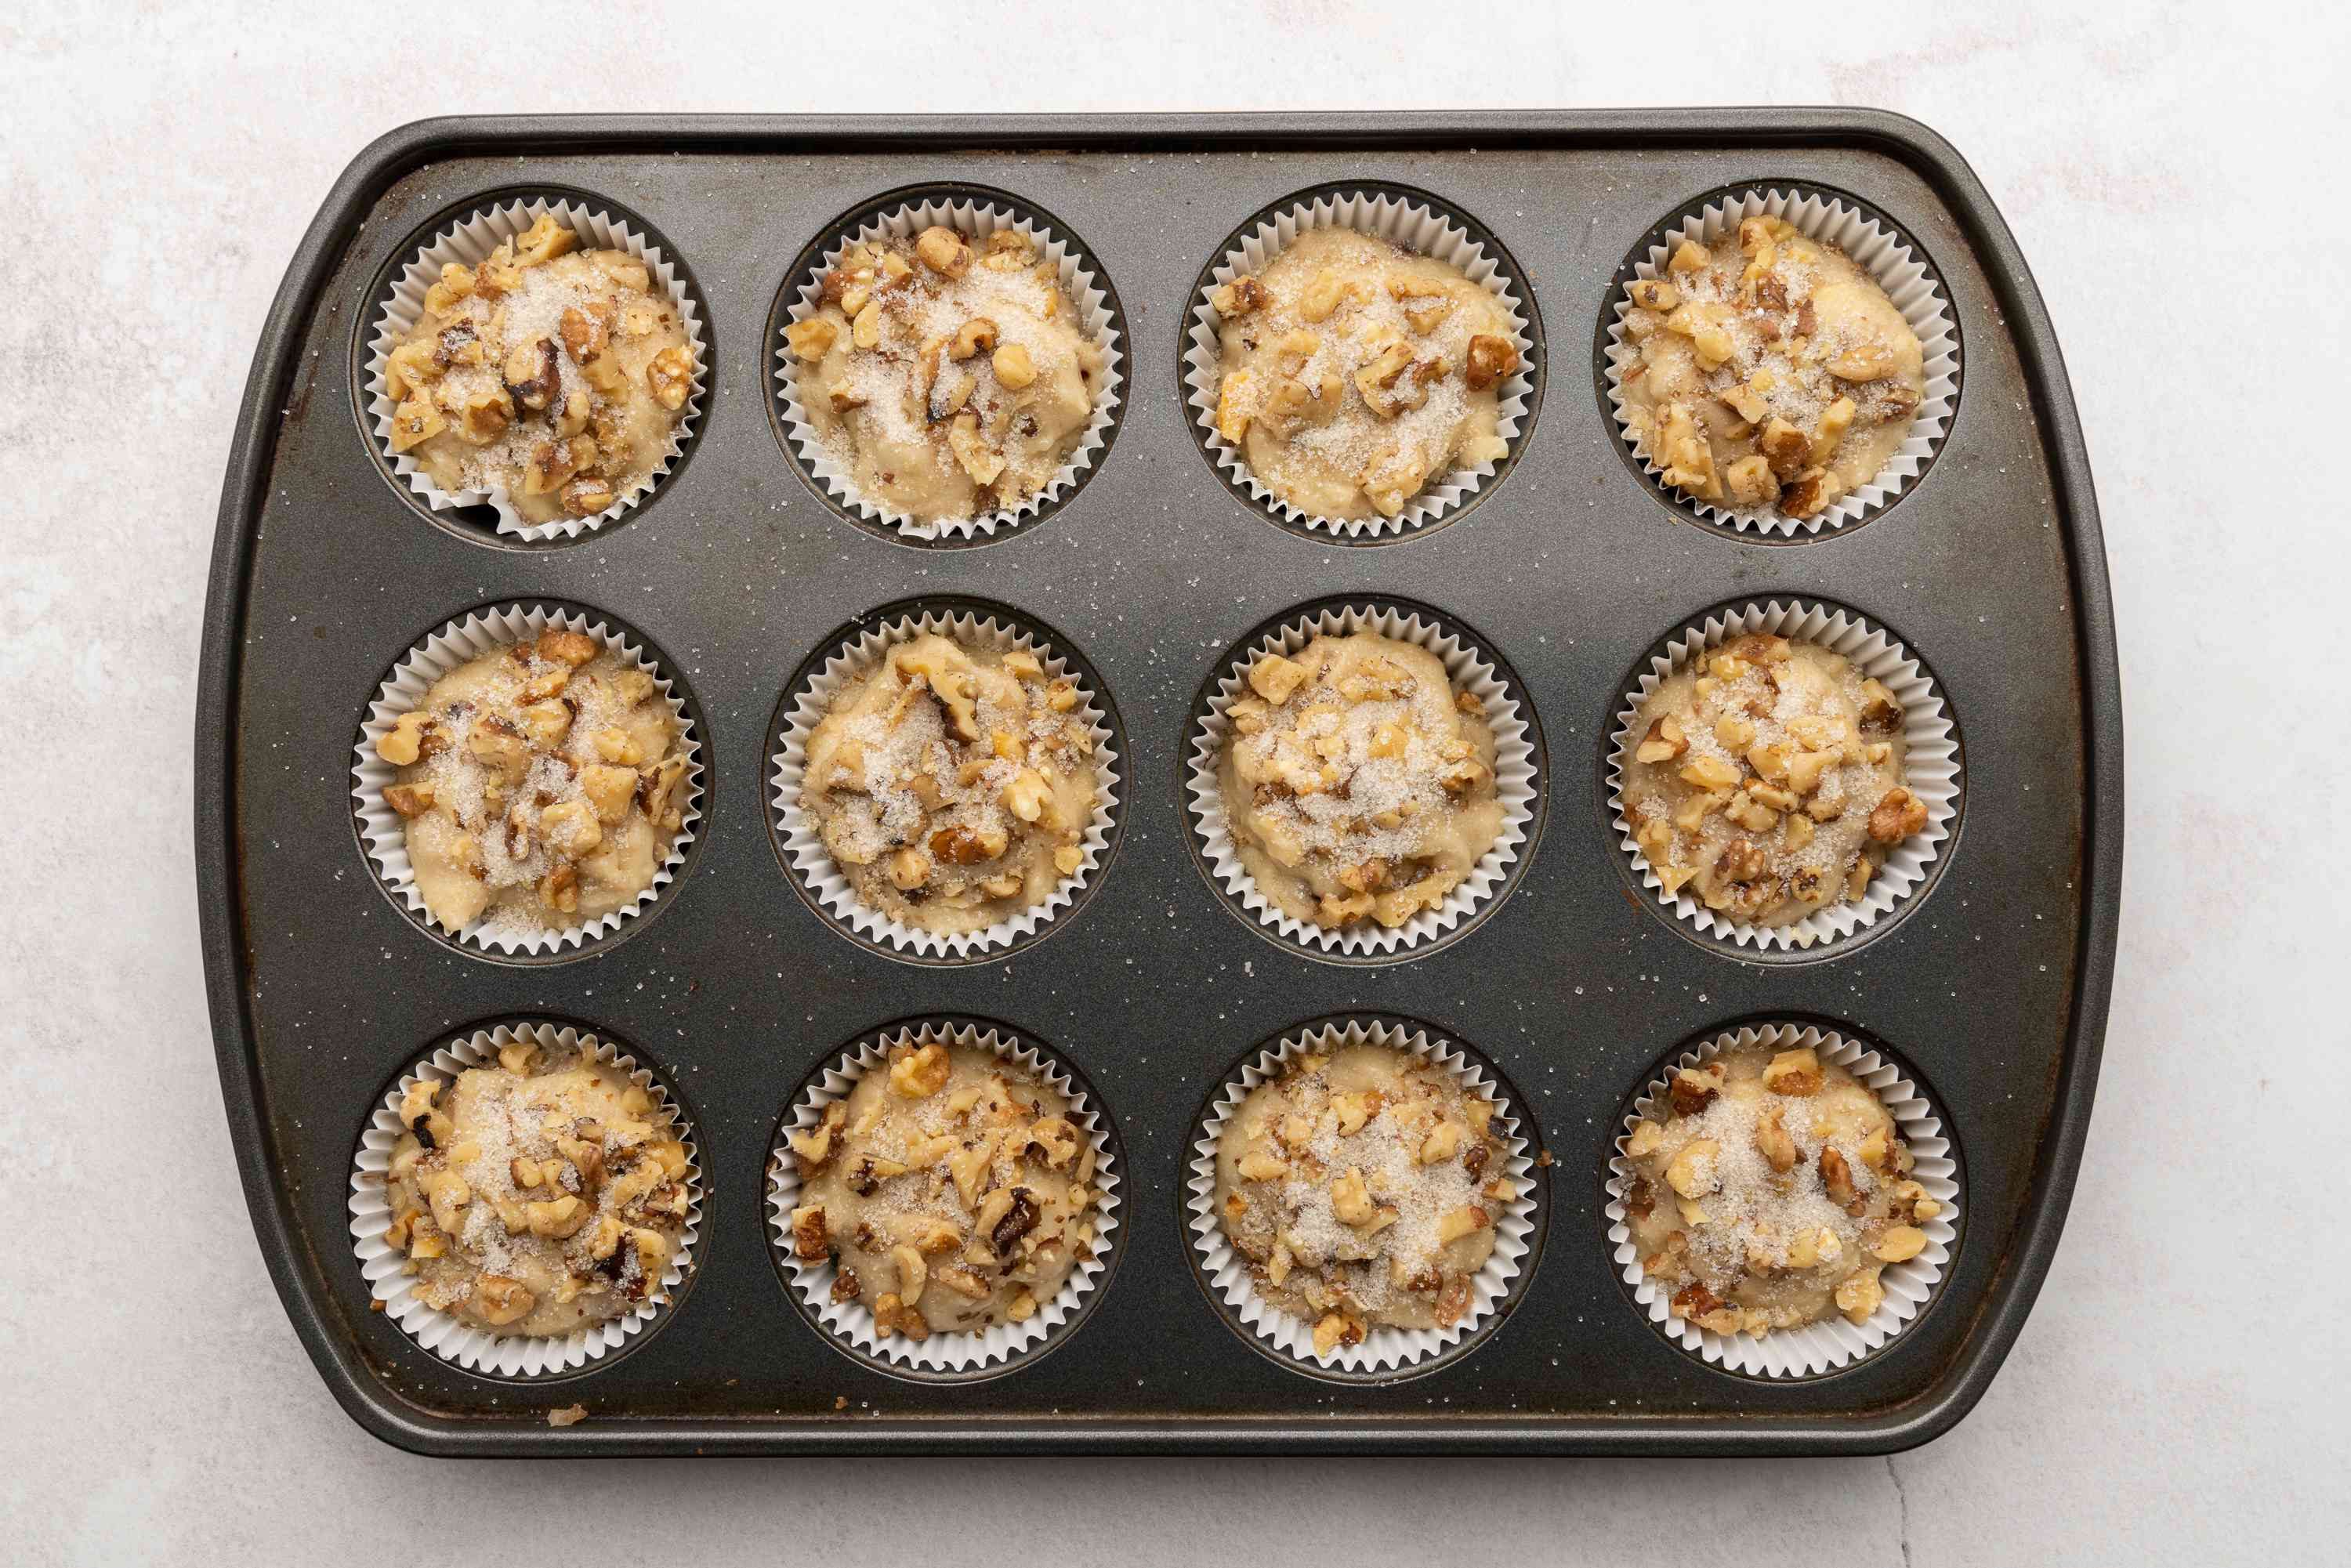 Banana bread mixture has been added to a muffin tin lined with paper inserts